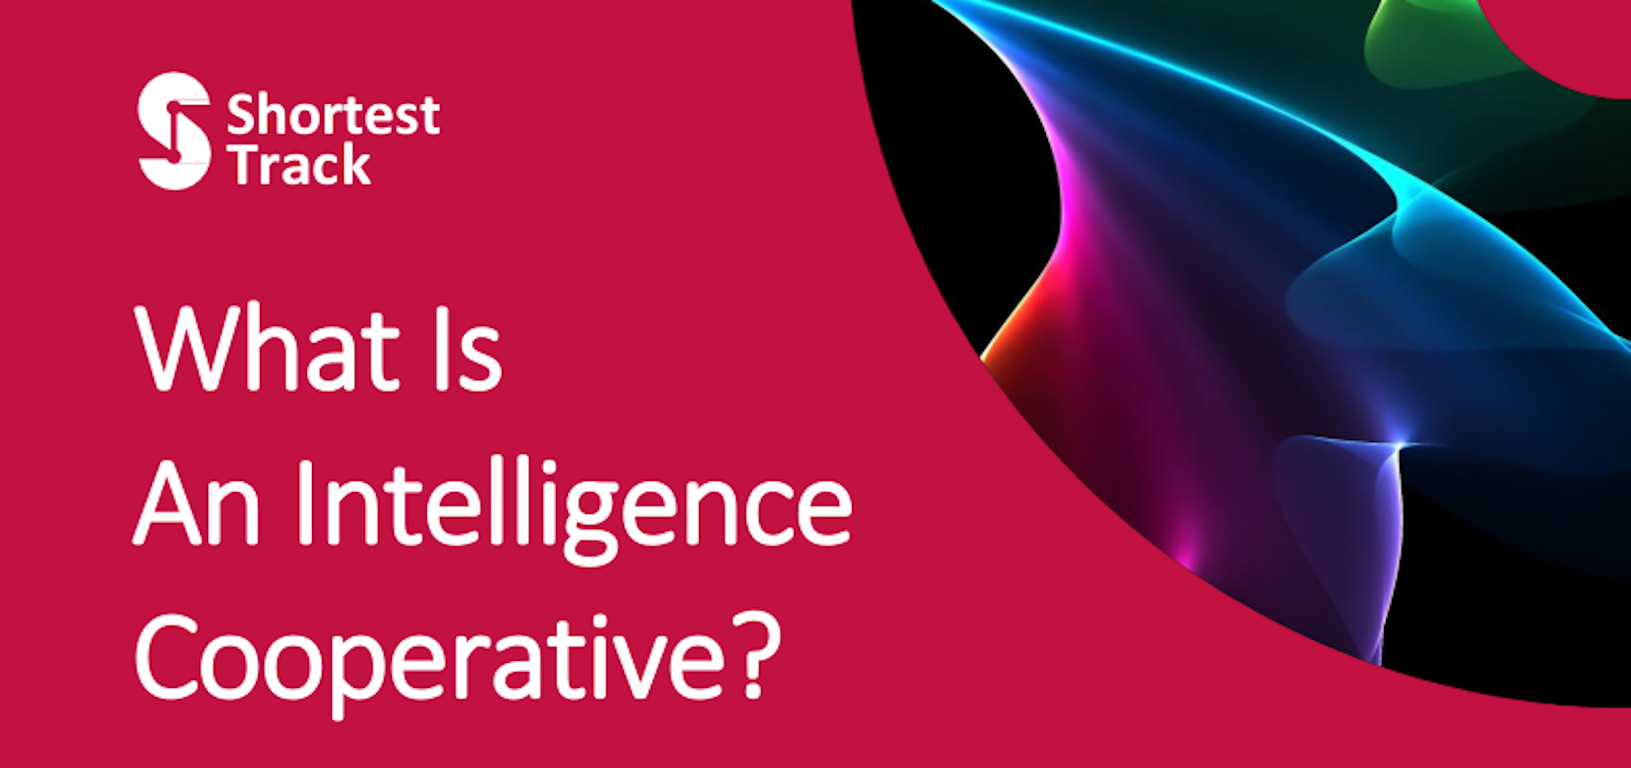 What Is An Intelligence Cooperative?